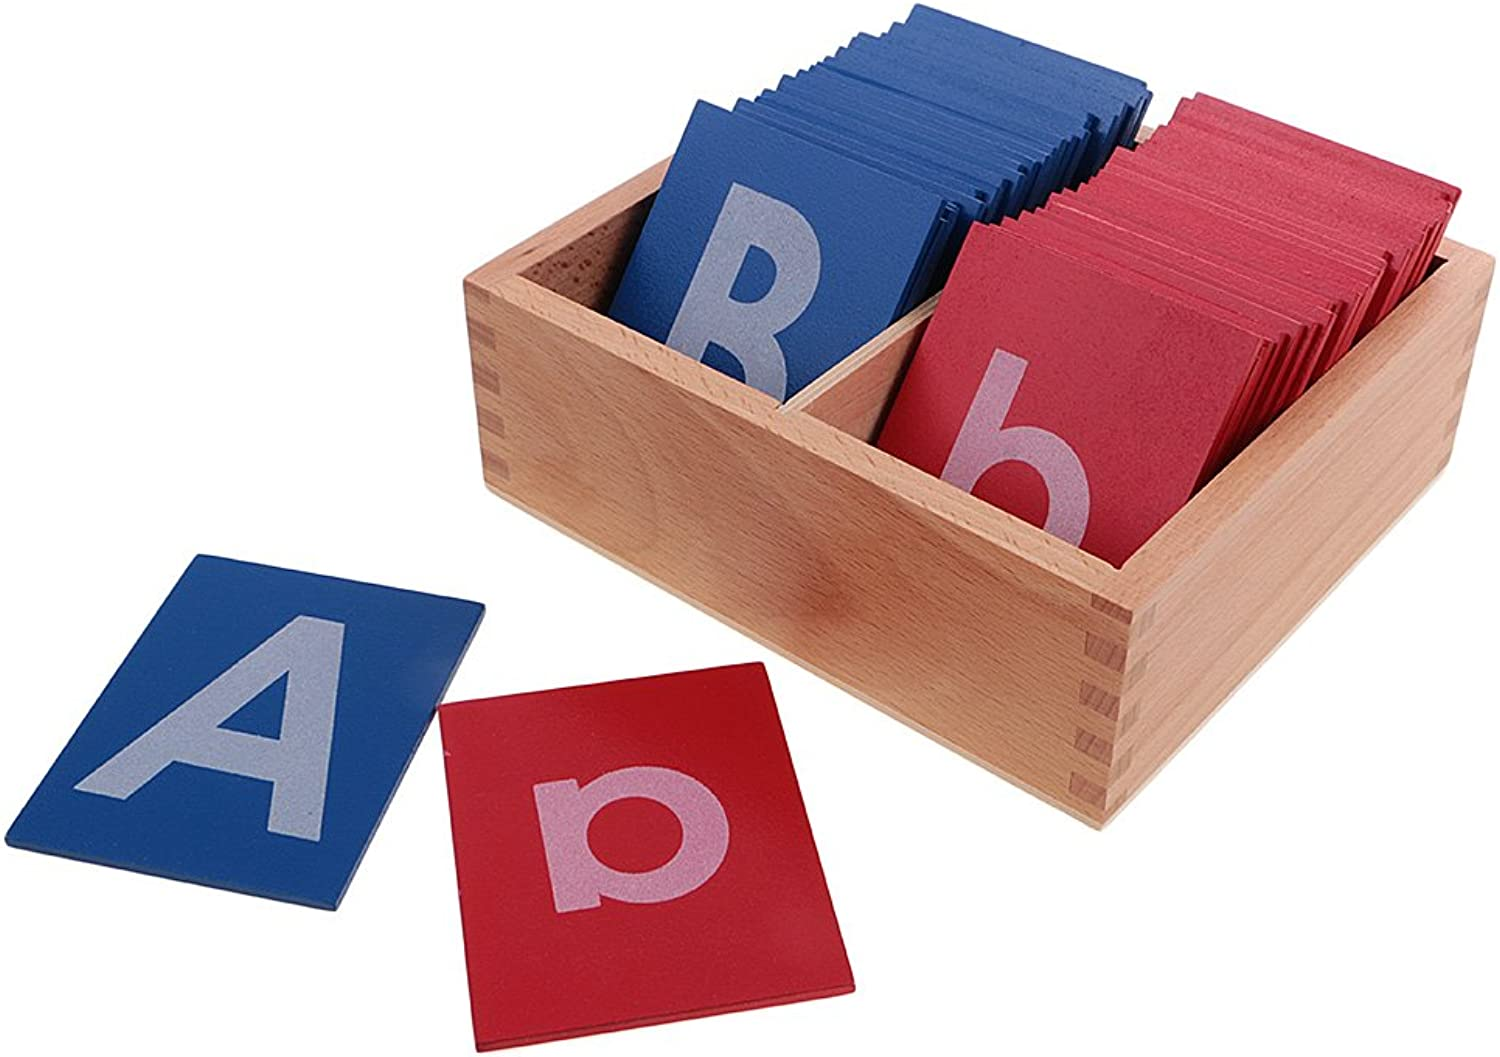 MagiDeal Kids Montessori Materials Alphabets Box a-z A-Z Letter for Composing Words